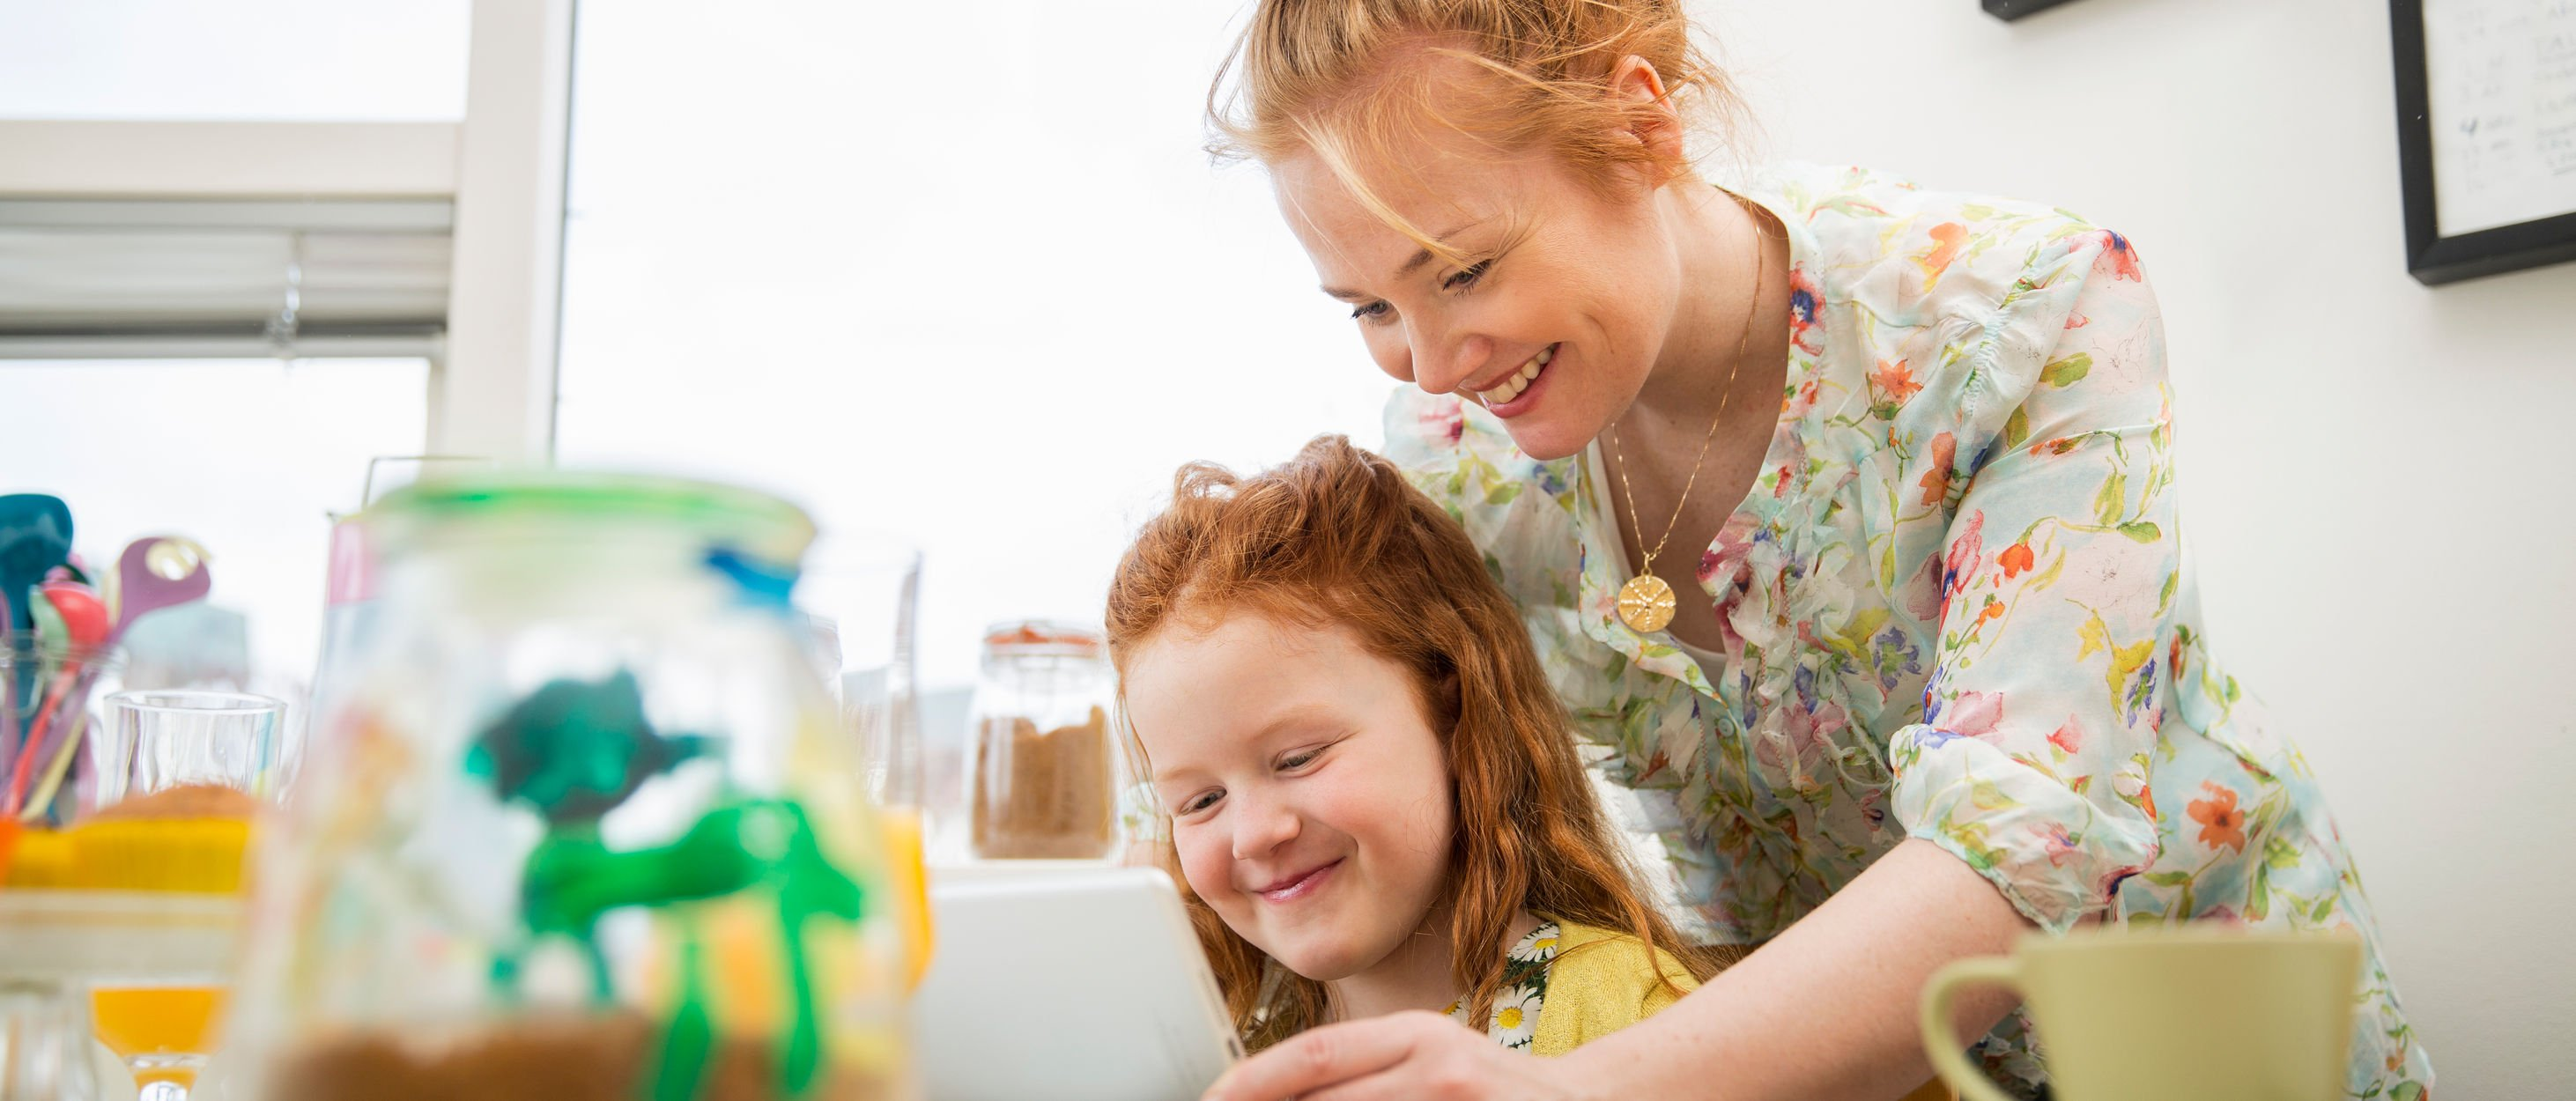 ascend program Ascend Program Stocksy txpe65556940Xz000 Large 119668 e1465506293393